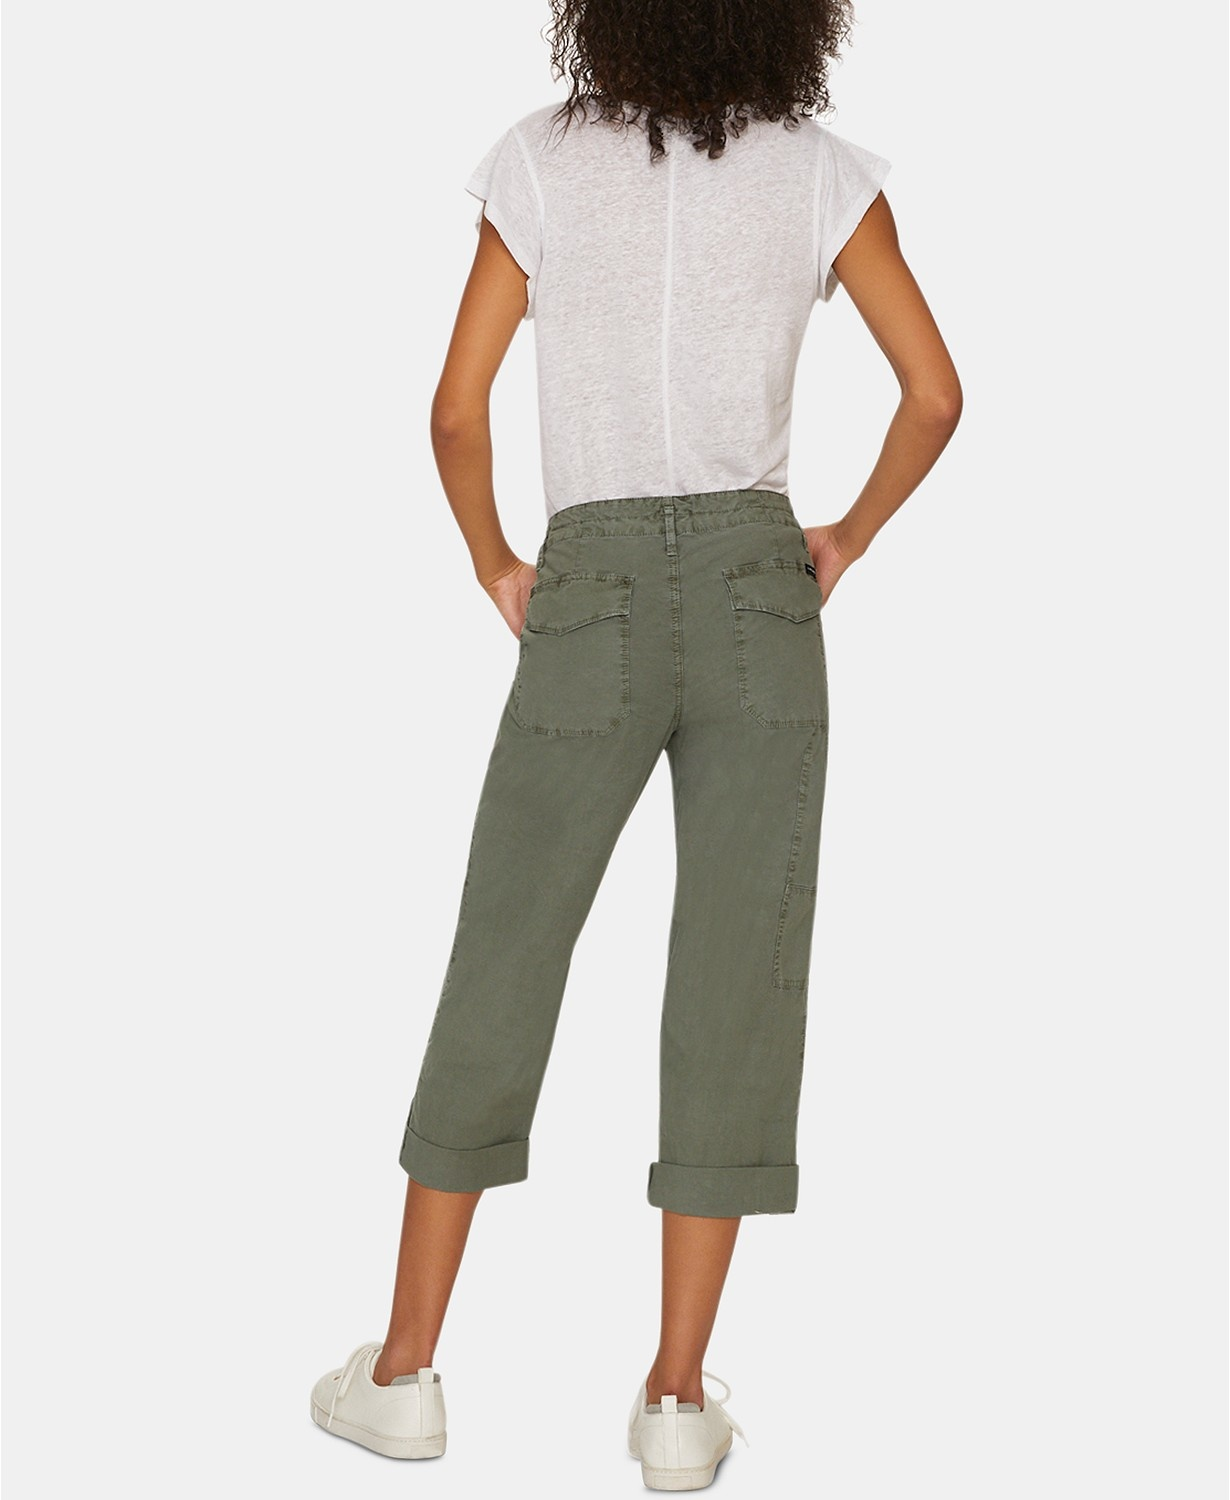 Sanctuary Clothing Explorer Patch Pocket Crop Pant